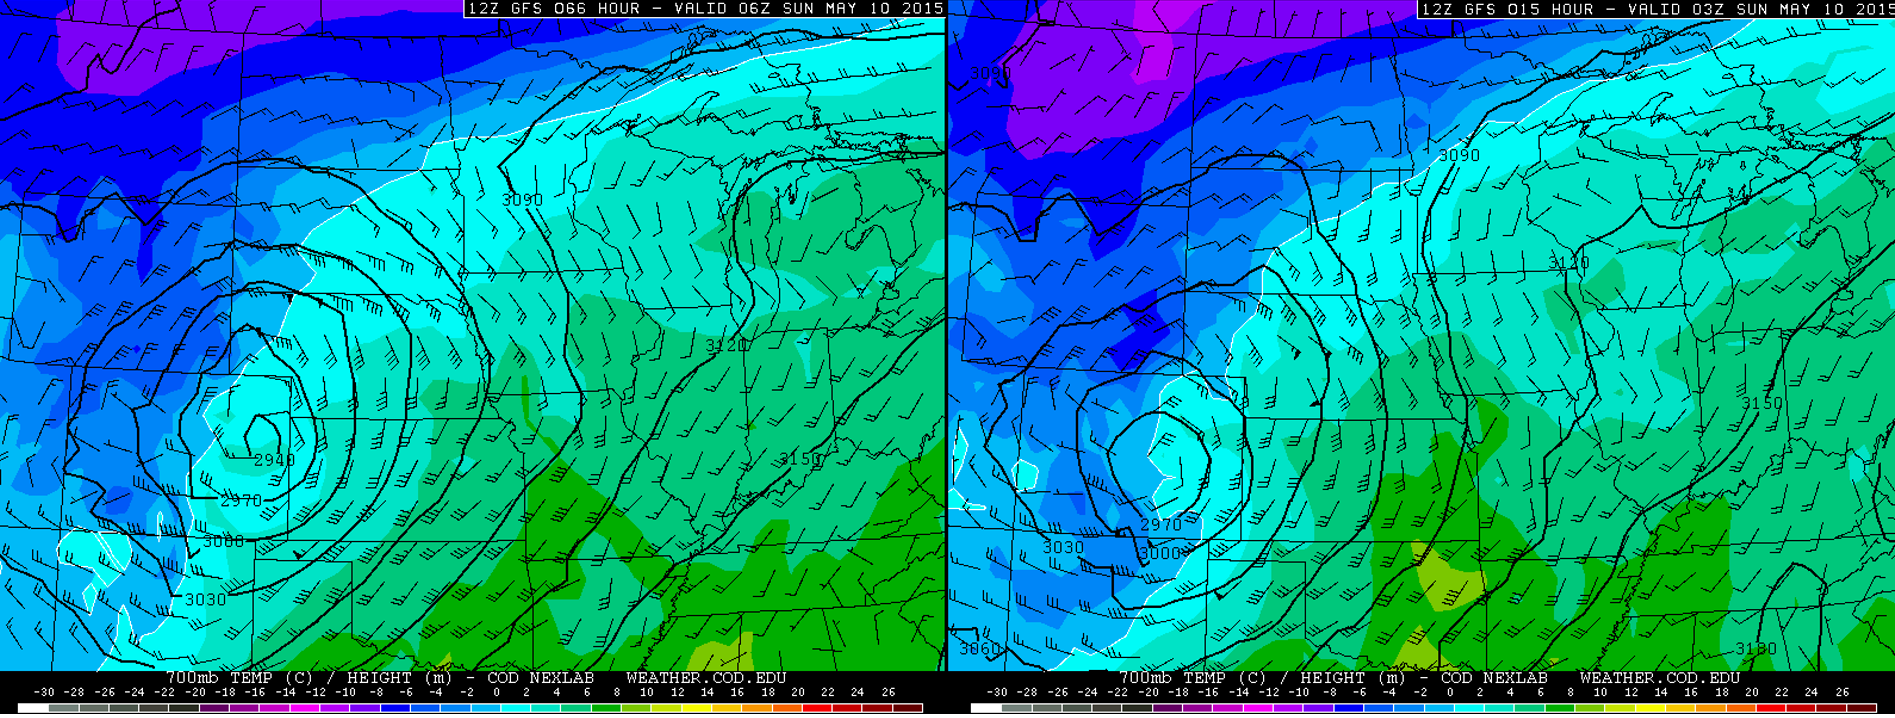 The GFS 700mb forecasts for winds, heights, and temperature, valid at 9pm Saturday. The image on the left is Thursday morning's run, while the image on the right is Saturday mornings. Very similar overall, but the subtle difference in storm location (further south on right) and temperature (slightly cooler for Boulder on right) will have big implications.